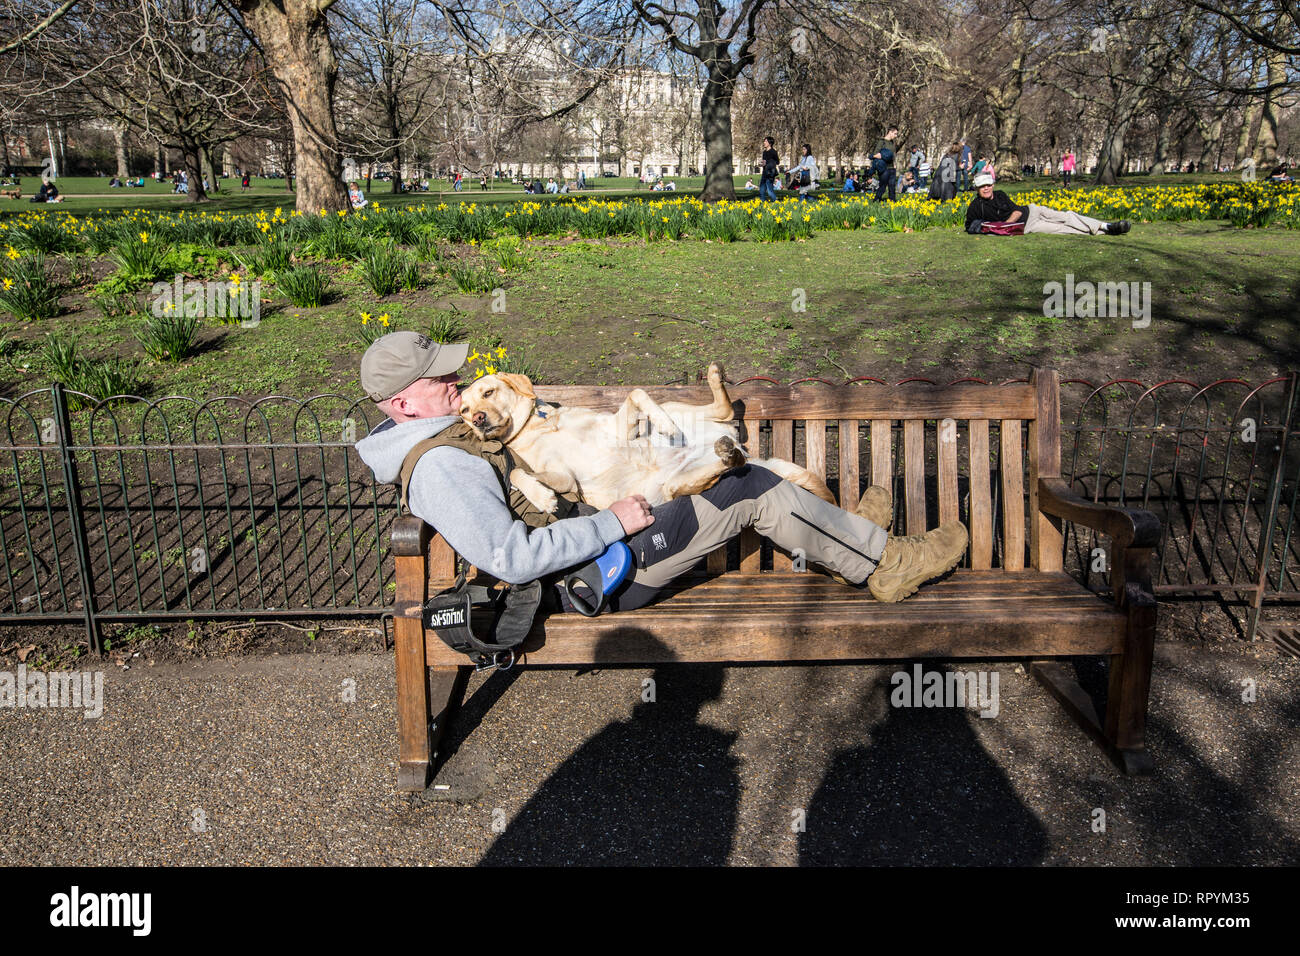 St James' Park, Central London, UK. 23rd February, 2019. A man and his canine friend enjoy the warm temperatures as Spring arrives in St James park, London, England UK 23rd February, 2019 Credit: Jeff Gilbert/Alamy Live News - Stock Image